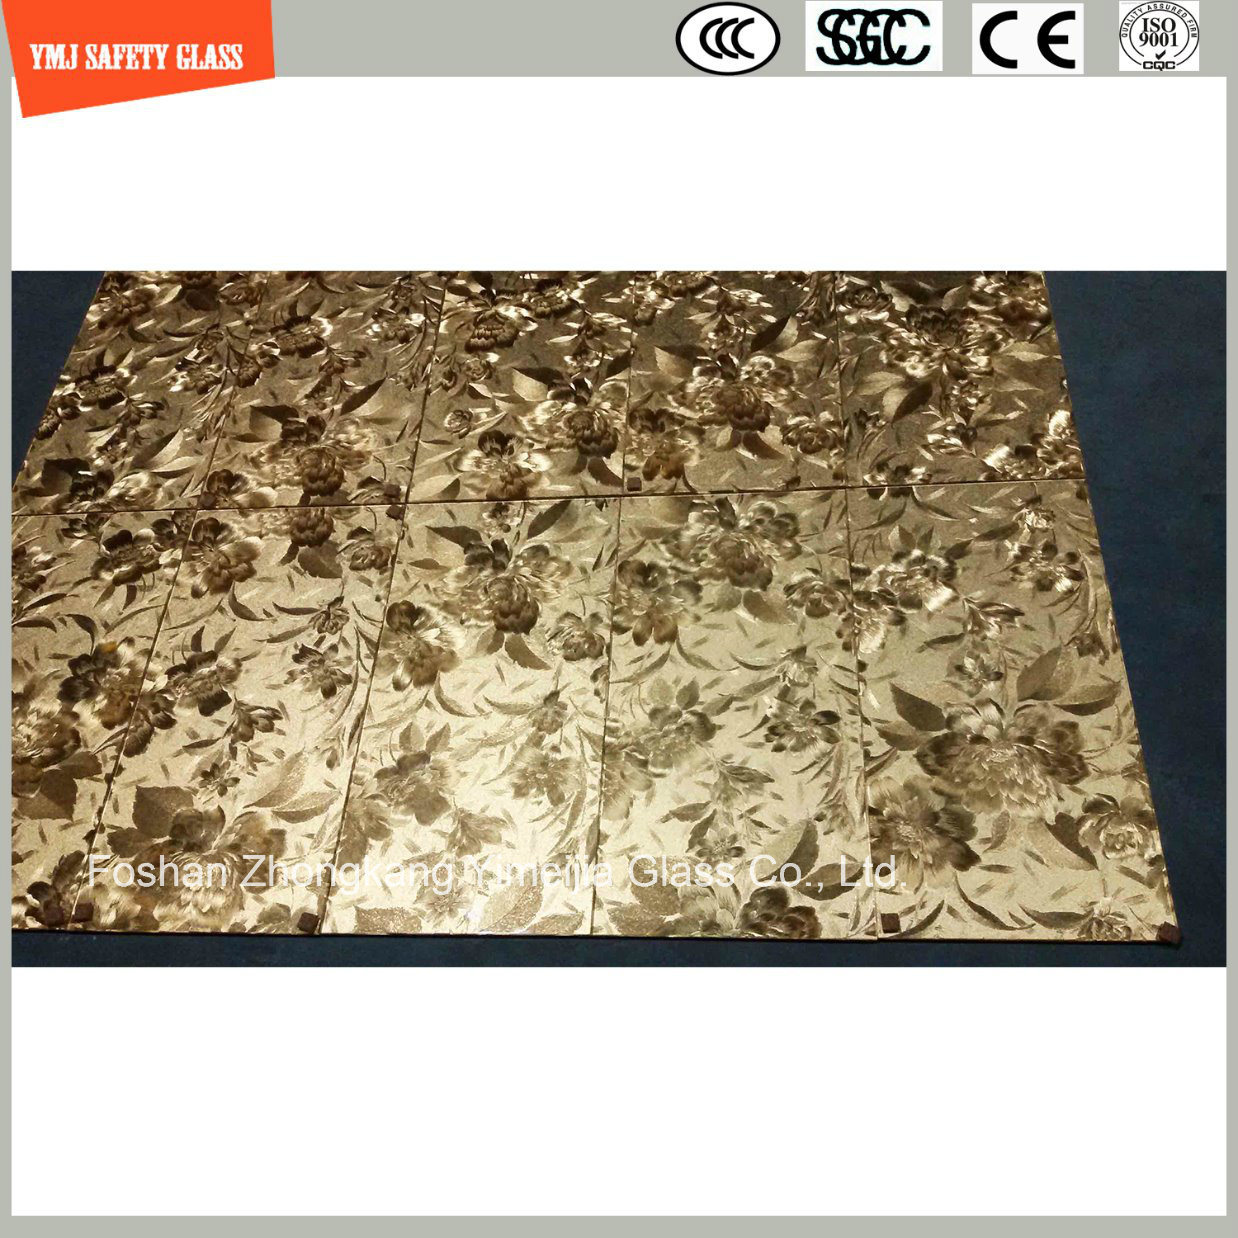 4-19mm Laminated Glass with Leather, Fabric Interlayer